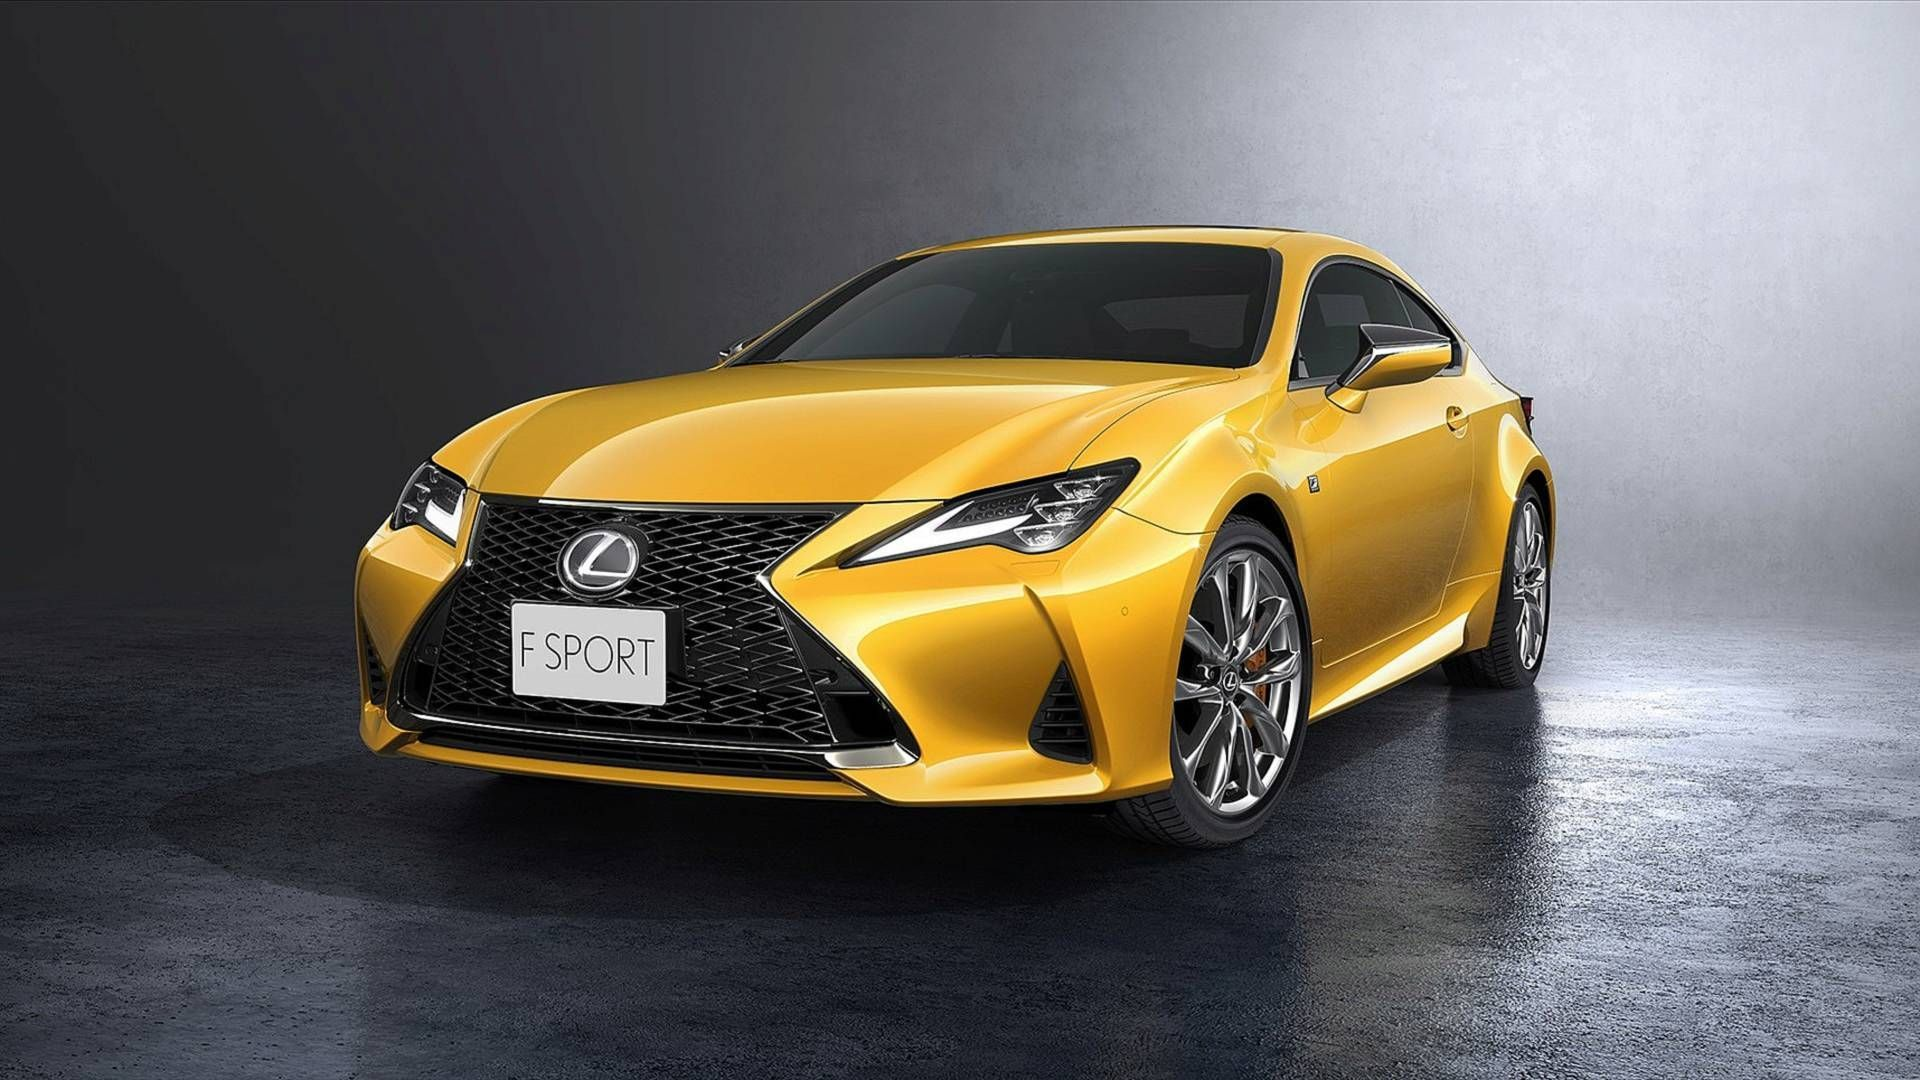 Best 2019 Lexus Coupe Interior Check More At Http Carbisnis2020 Club The Best 2019 Lexus Coupe Redesign And Review Lexus Lexus Cars Lexus Coupe